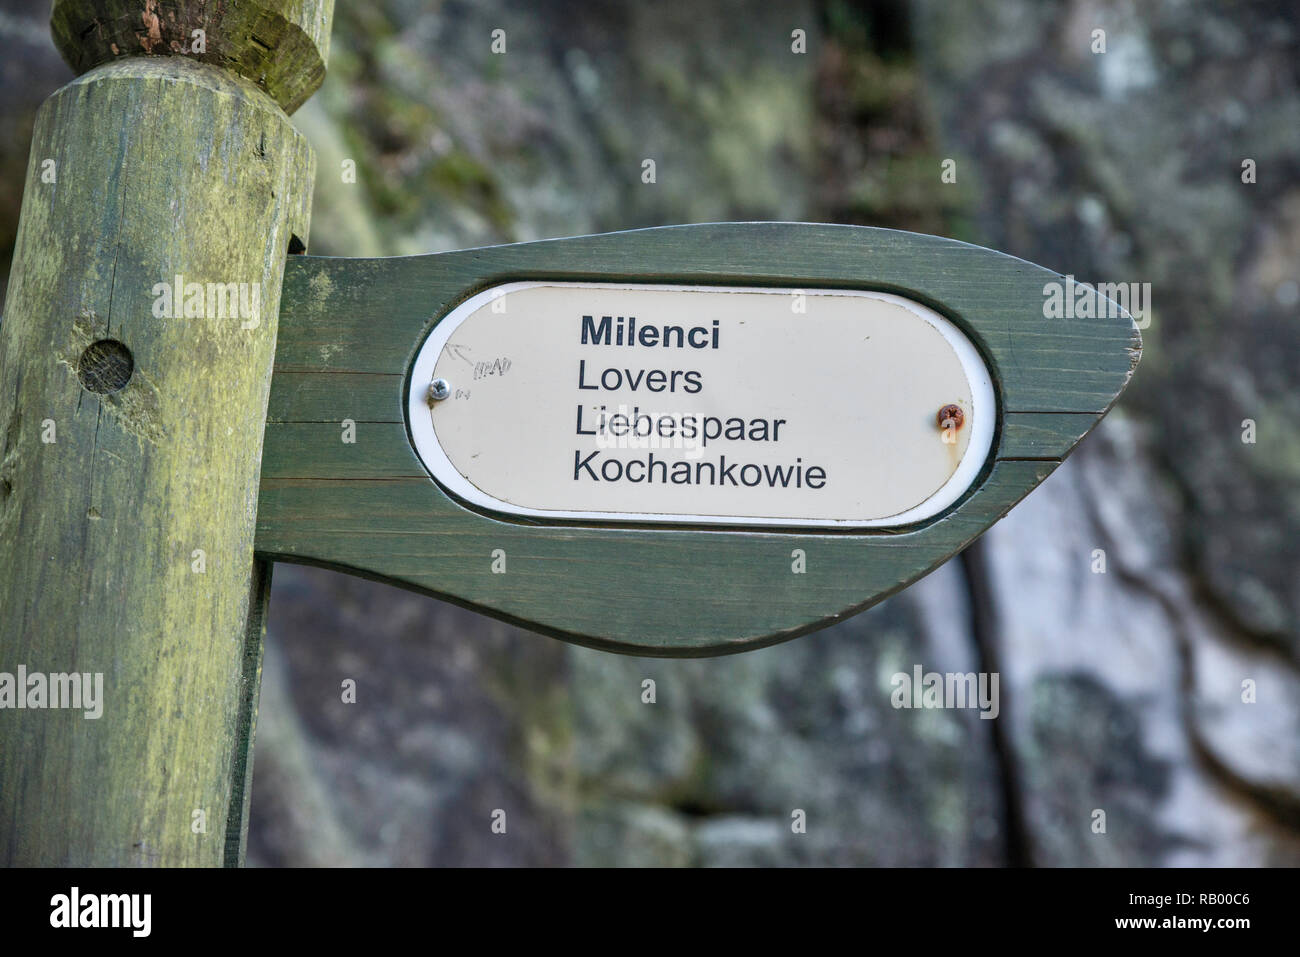 Multilingual sign at sandstone spires at Adršpach Rocks, Adršpach-Teplice Rocks National Nature Reserve, Central Sudetes, Bohemia, Czech Republic Stock Photo